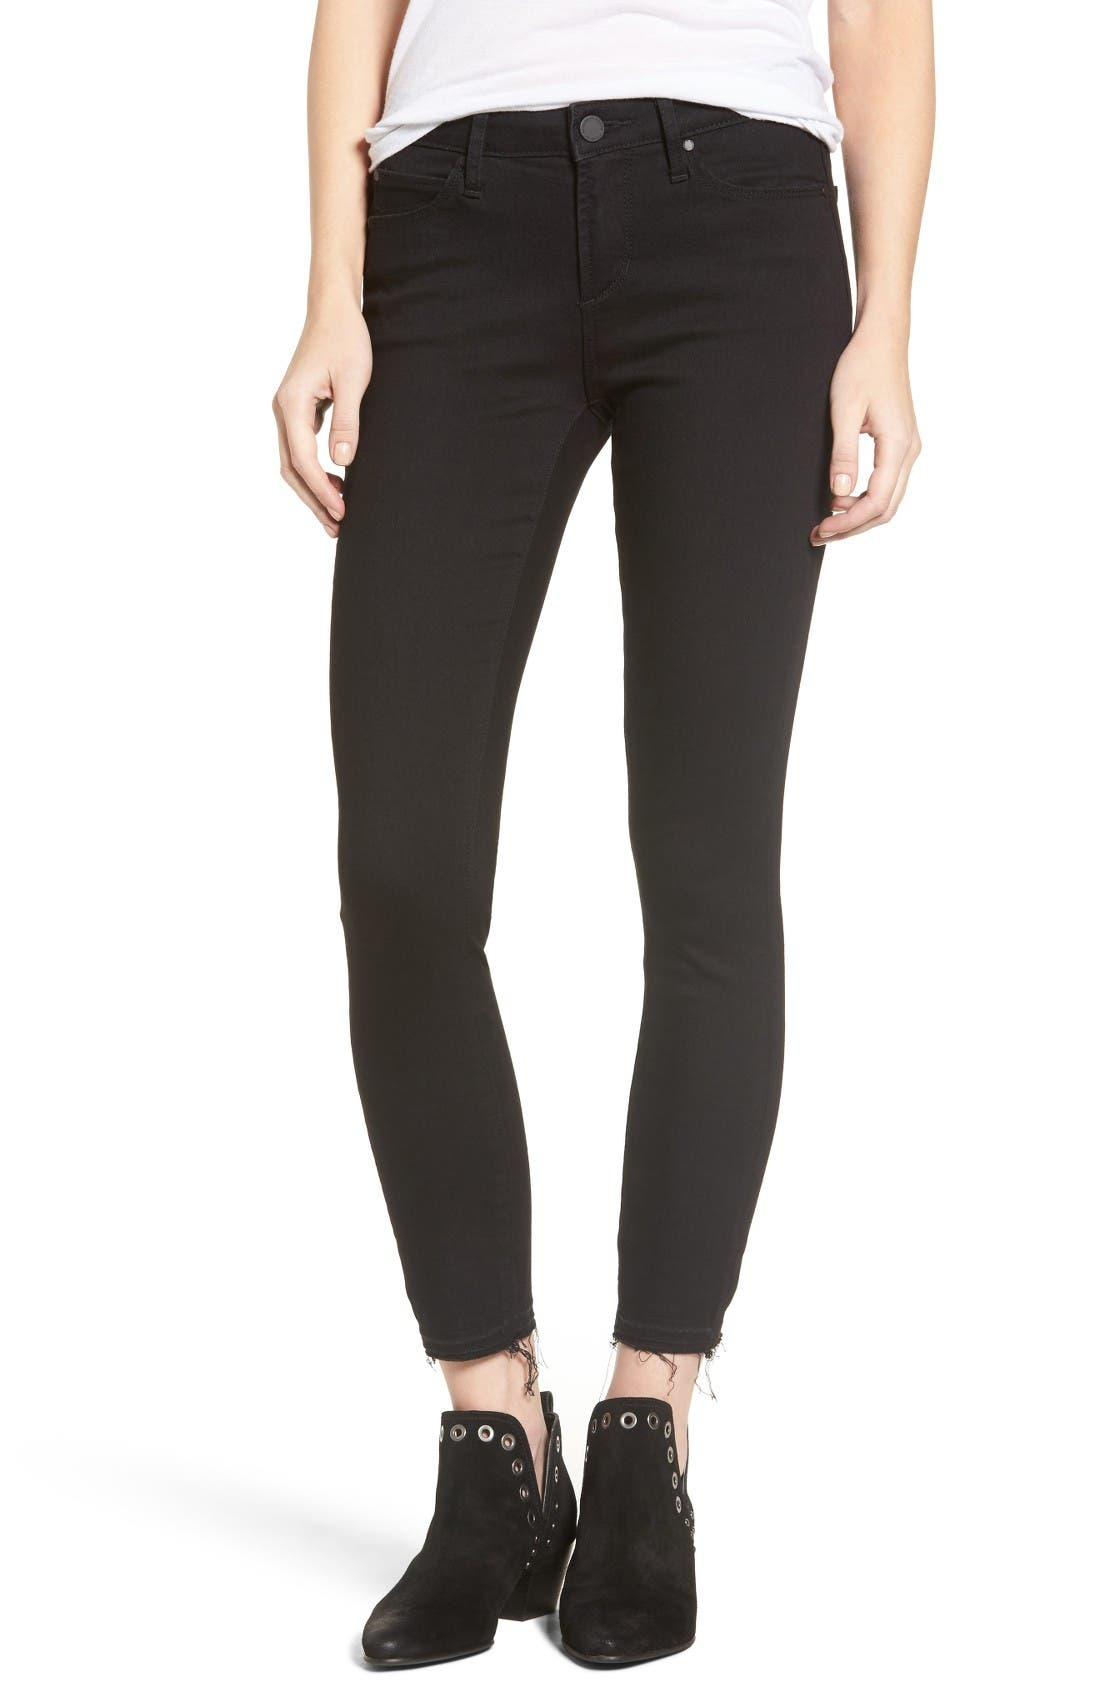 Articles of Society Carly Crop Skinny Jeans (Dunlop)